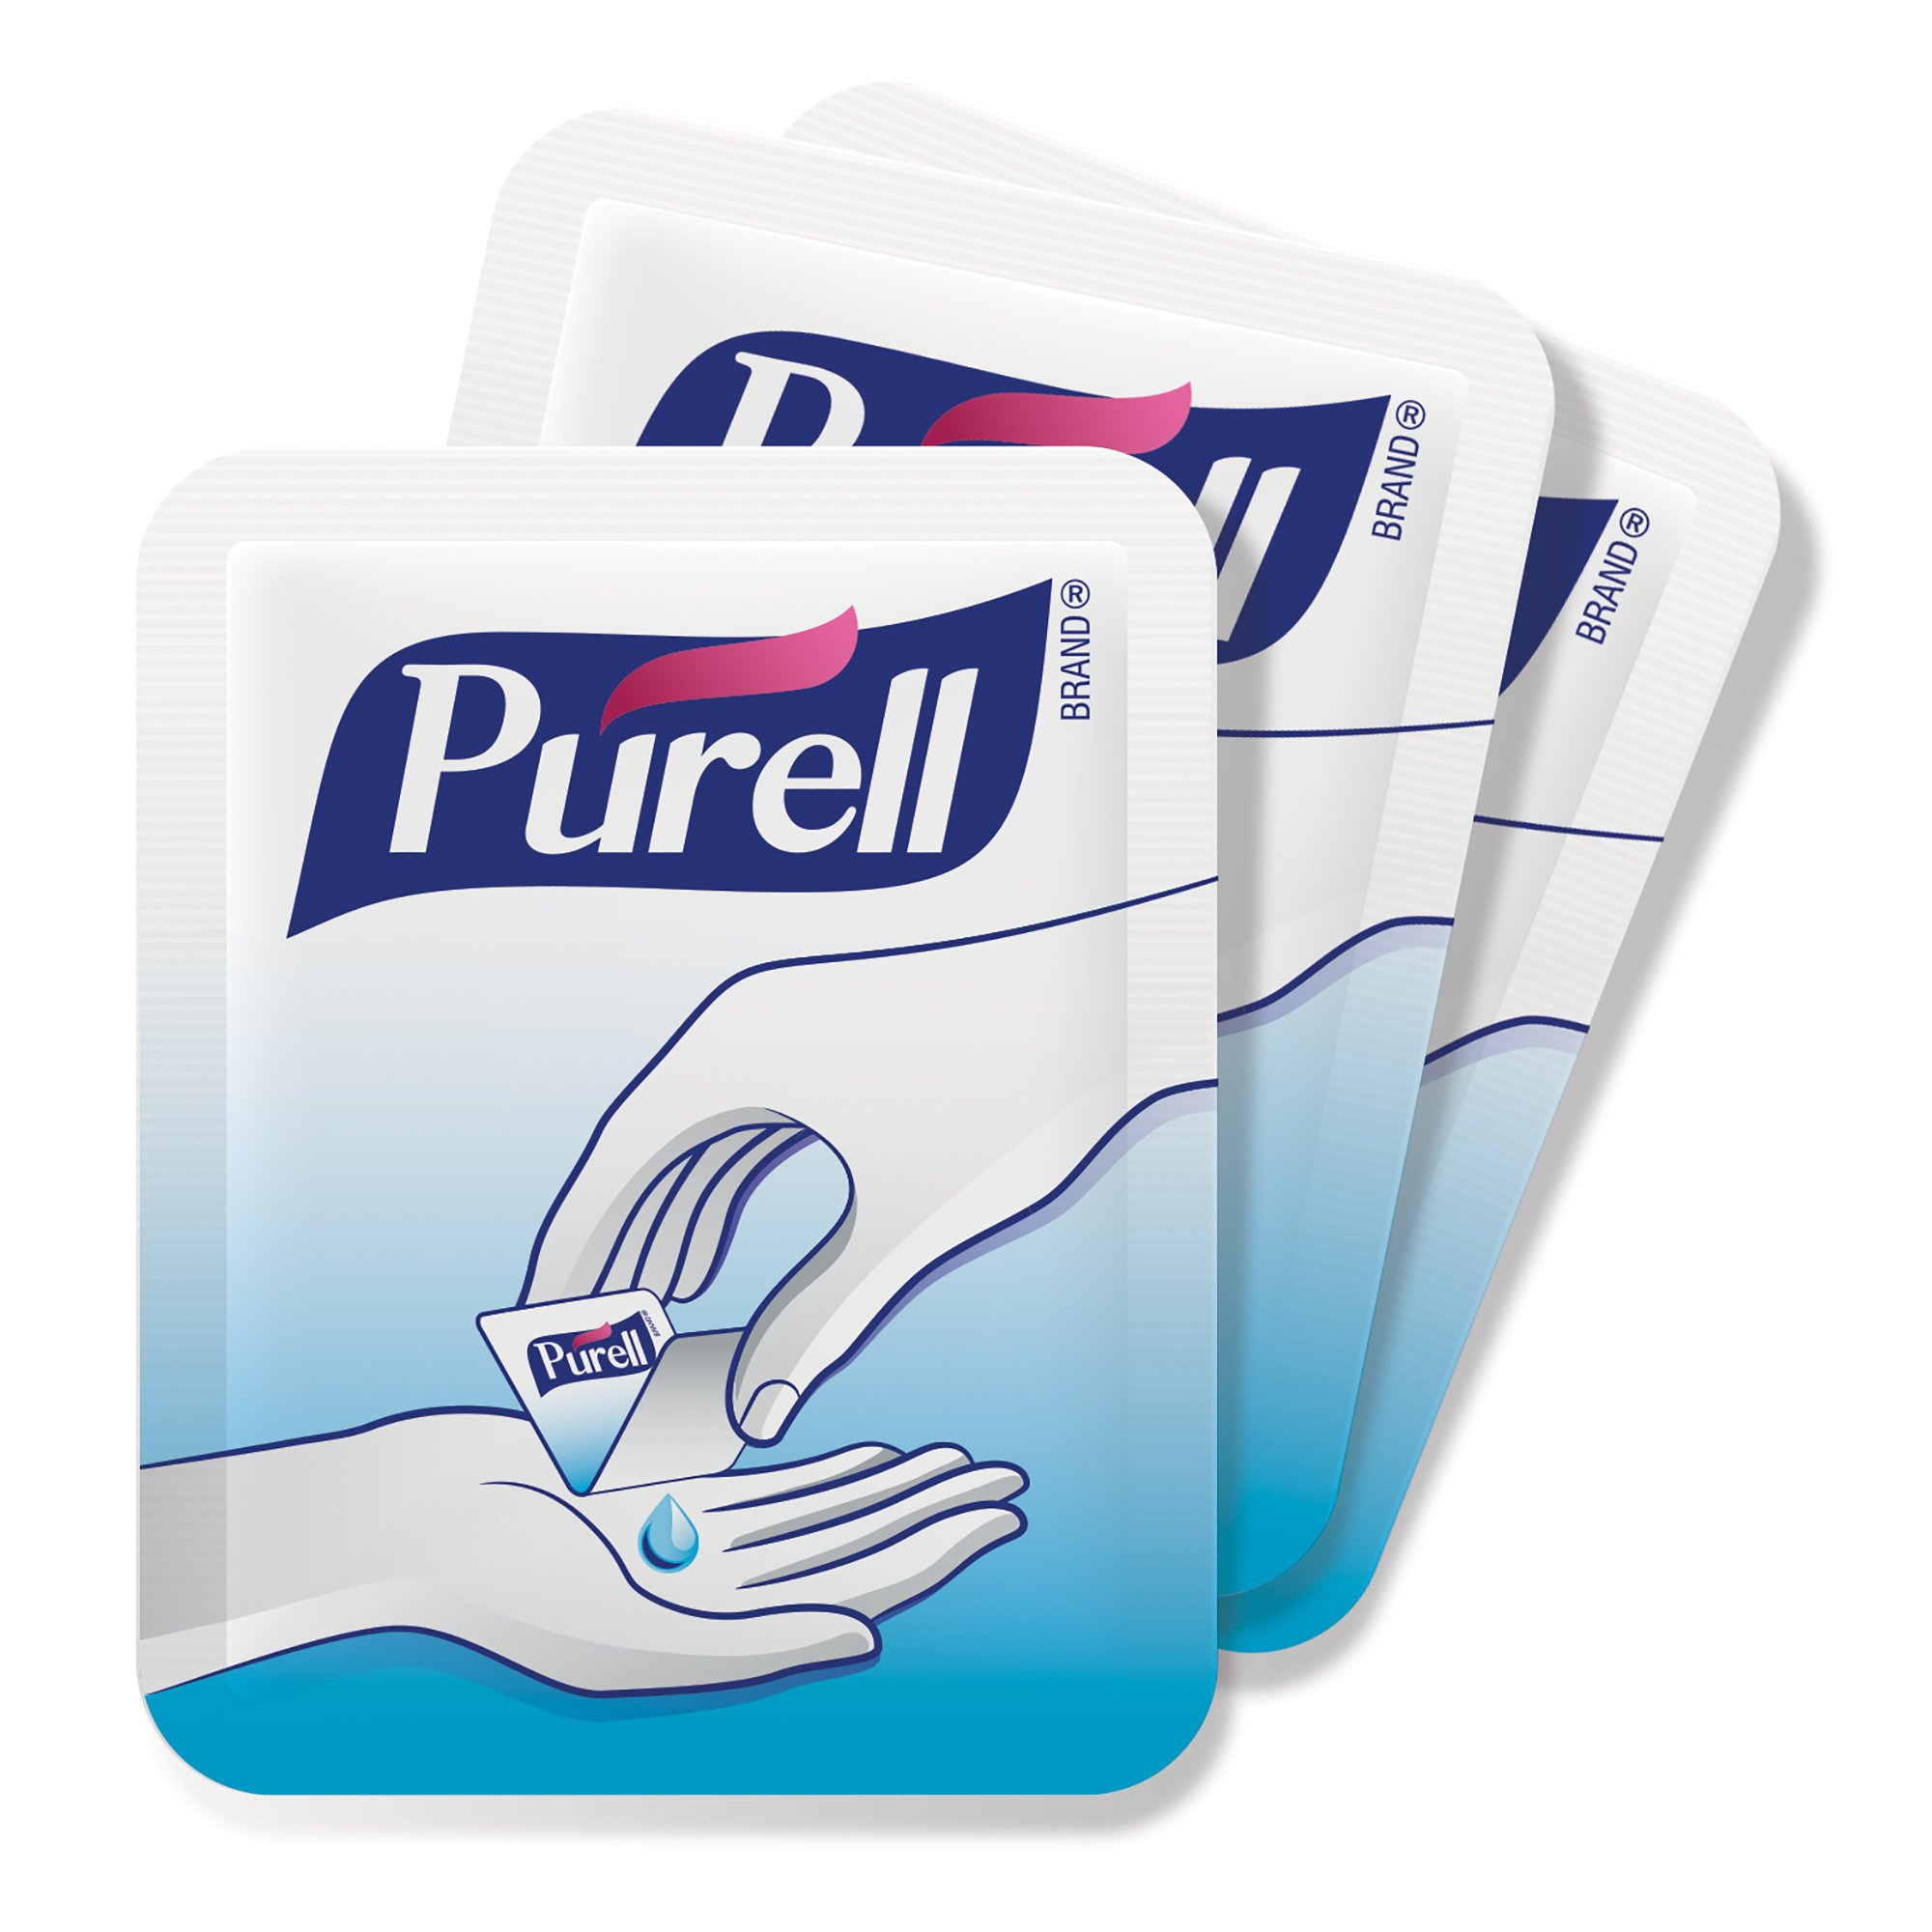 PURELL Advanced Hand Sanitizer Singles - Travel Size Single Use Individual Portable Packets, 125 count Self Dispensing Packets in a Display Box - 9620-12-125EC by Purell (Image #2)